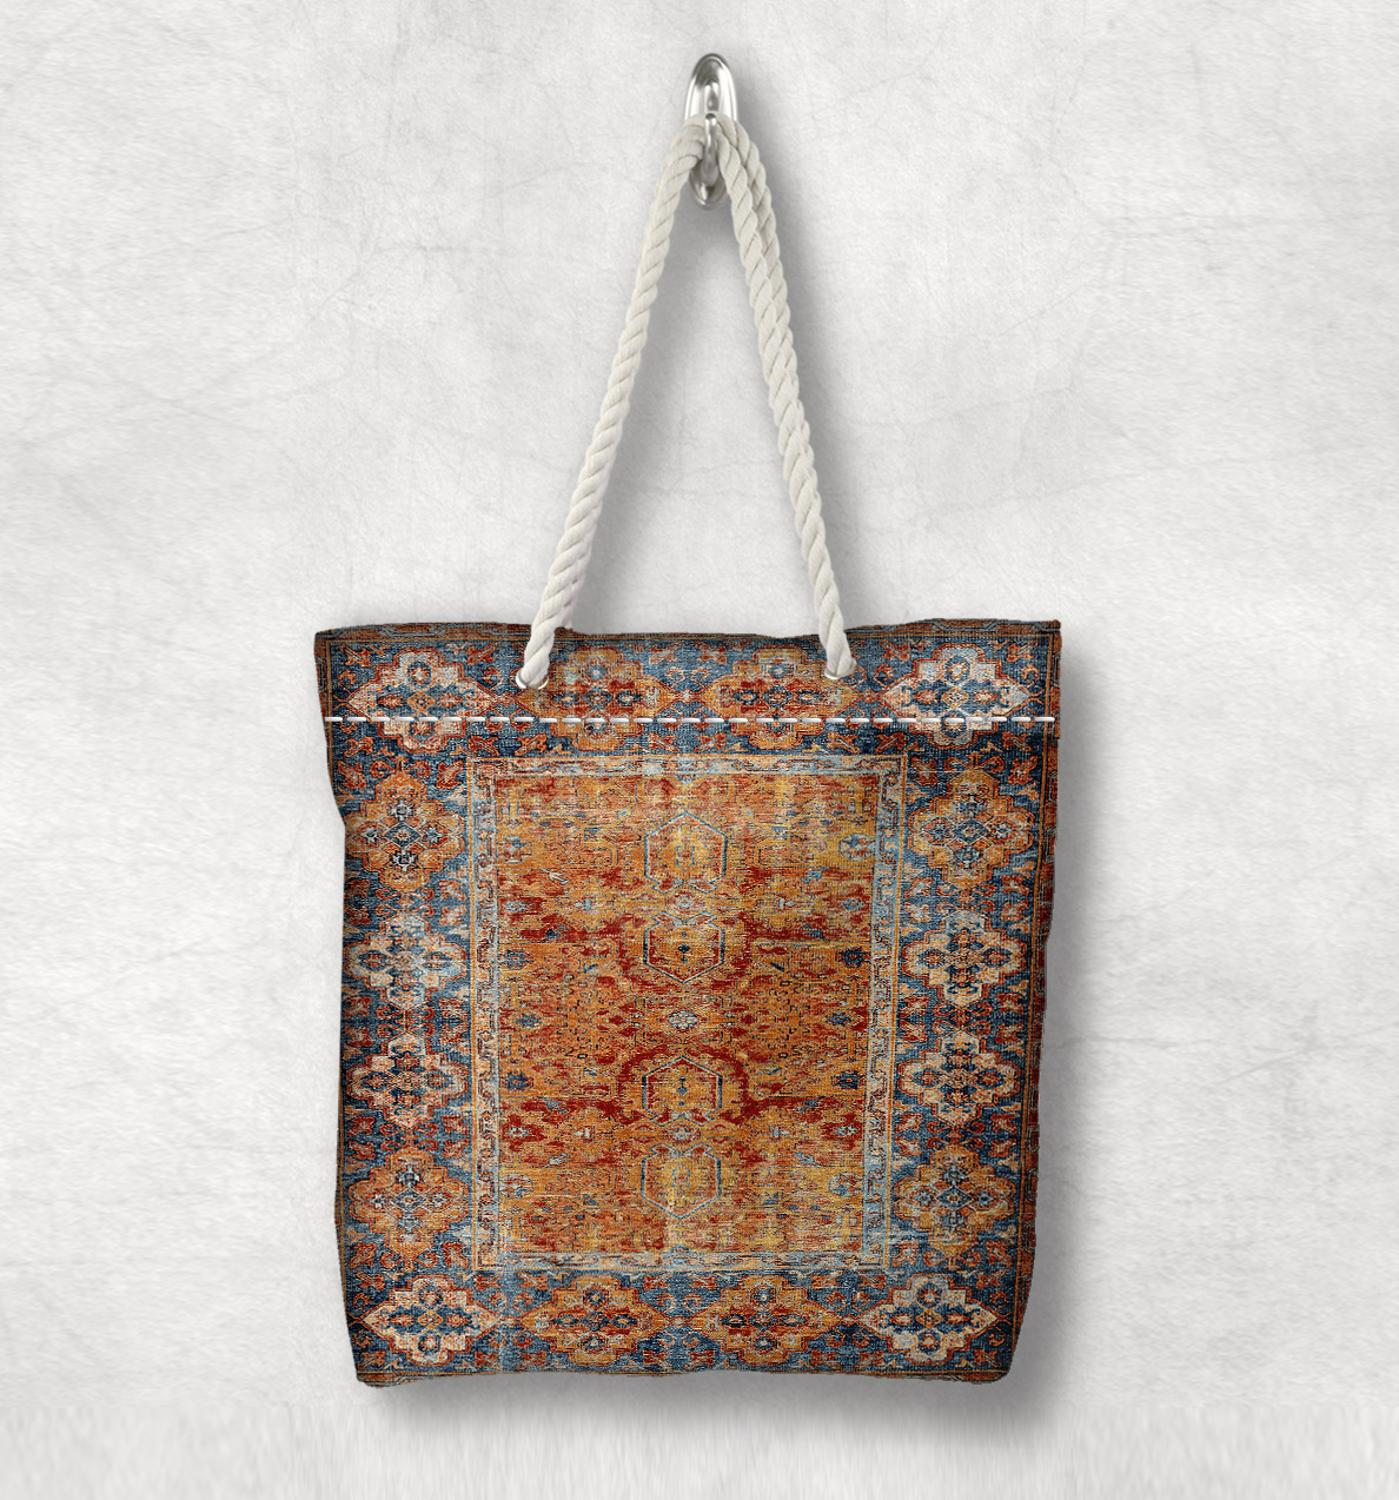 Else Orange Brown Turkey Anatolia Antique Kilim Design White Rope Handle Canvas Bag Cotton Canvas Zippered Tote Bag Shoulder Bag